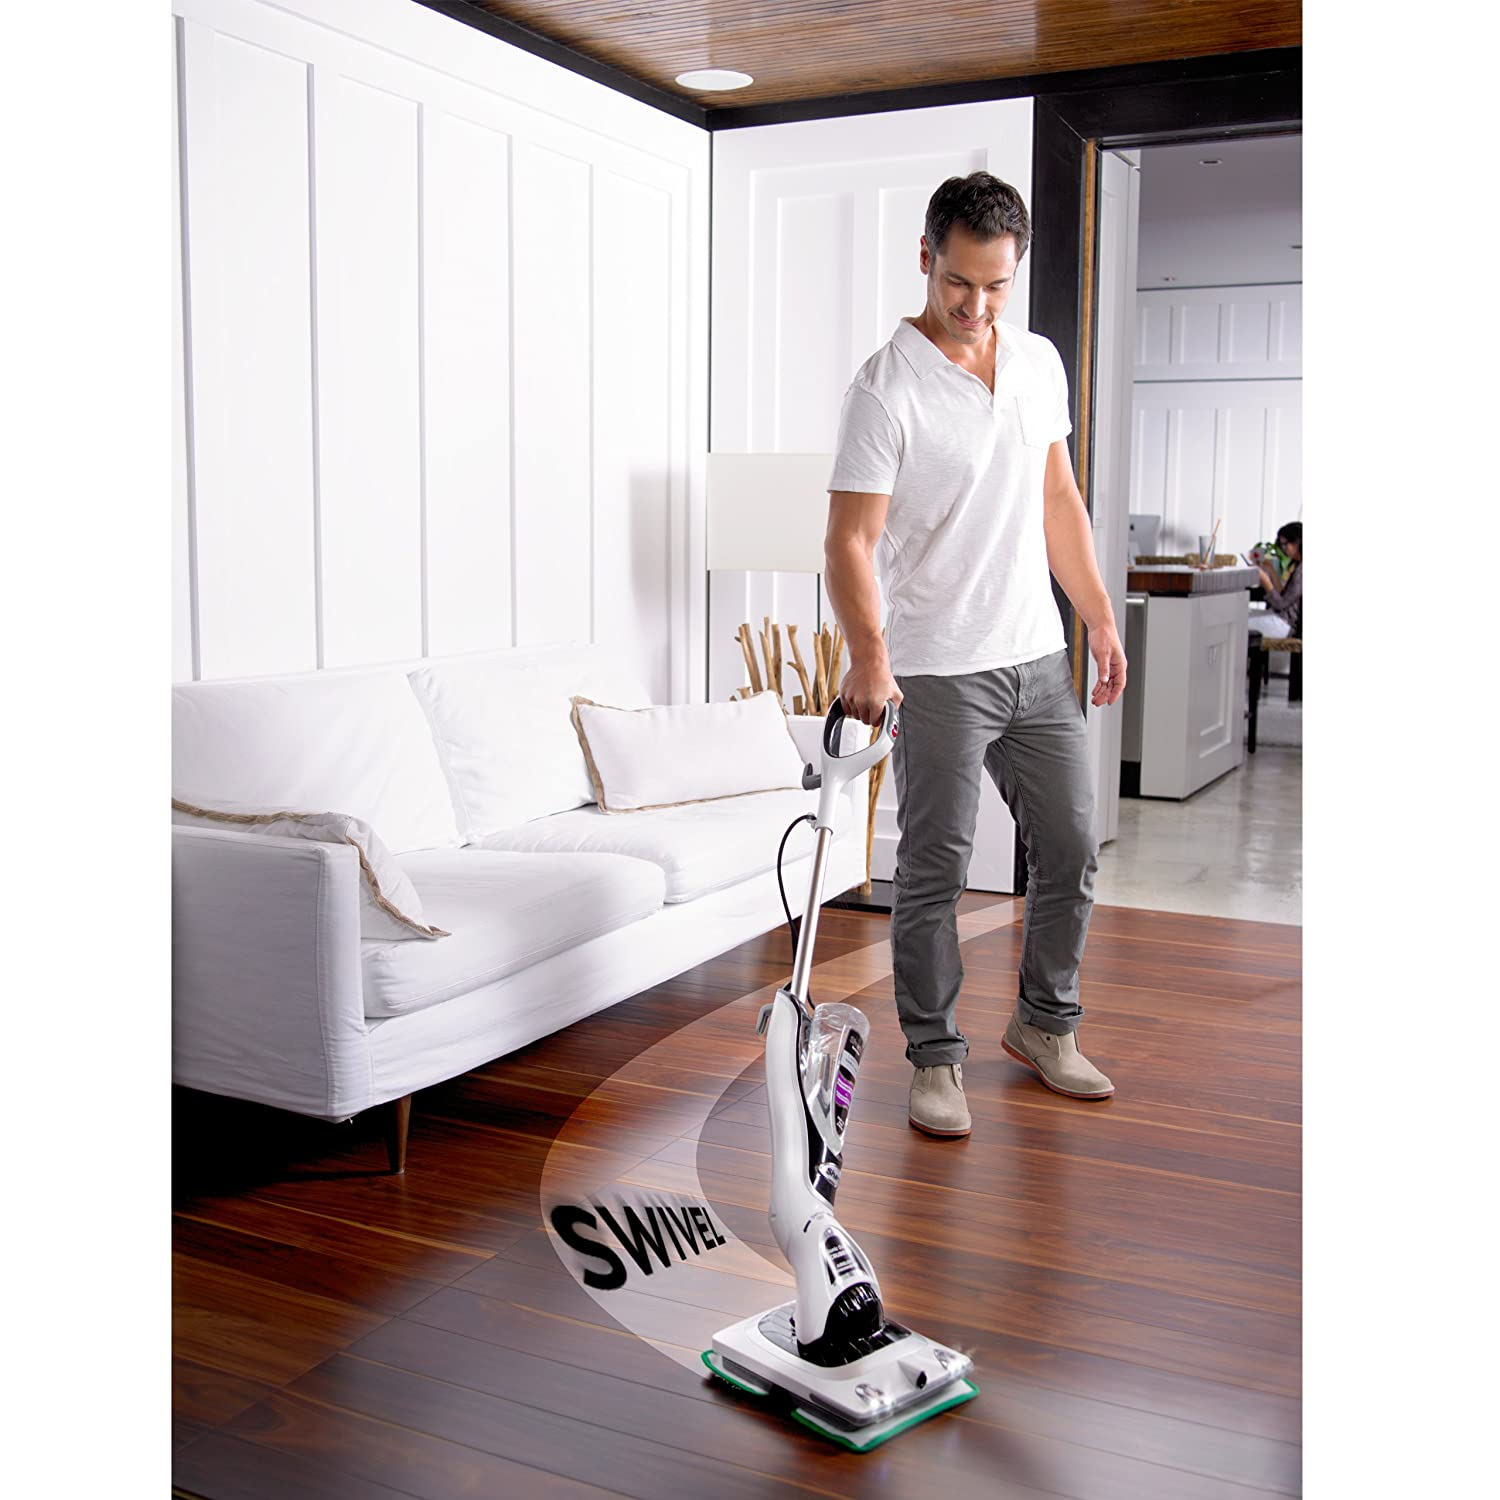 Best Hardwood Floor Vacuum get and keep those dark wood floors clean via our fifth house Amazoncom Shark Sonic Duo Carpet And Hard Floor Cleaner Zz550 Home Kitchen